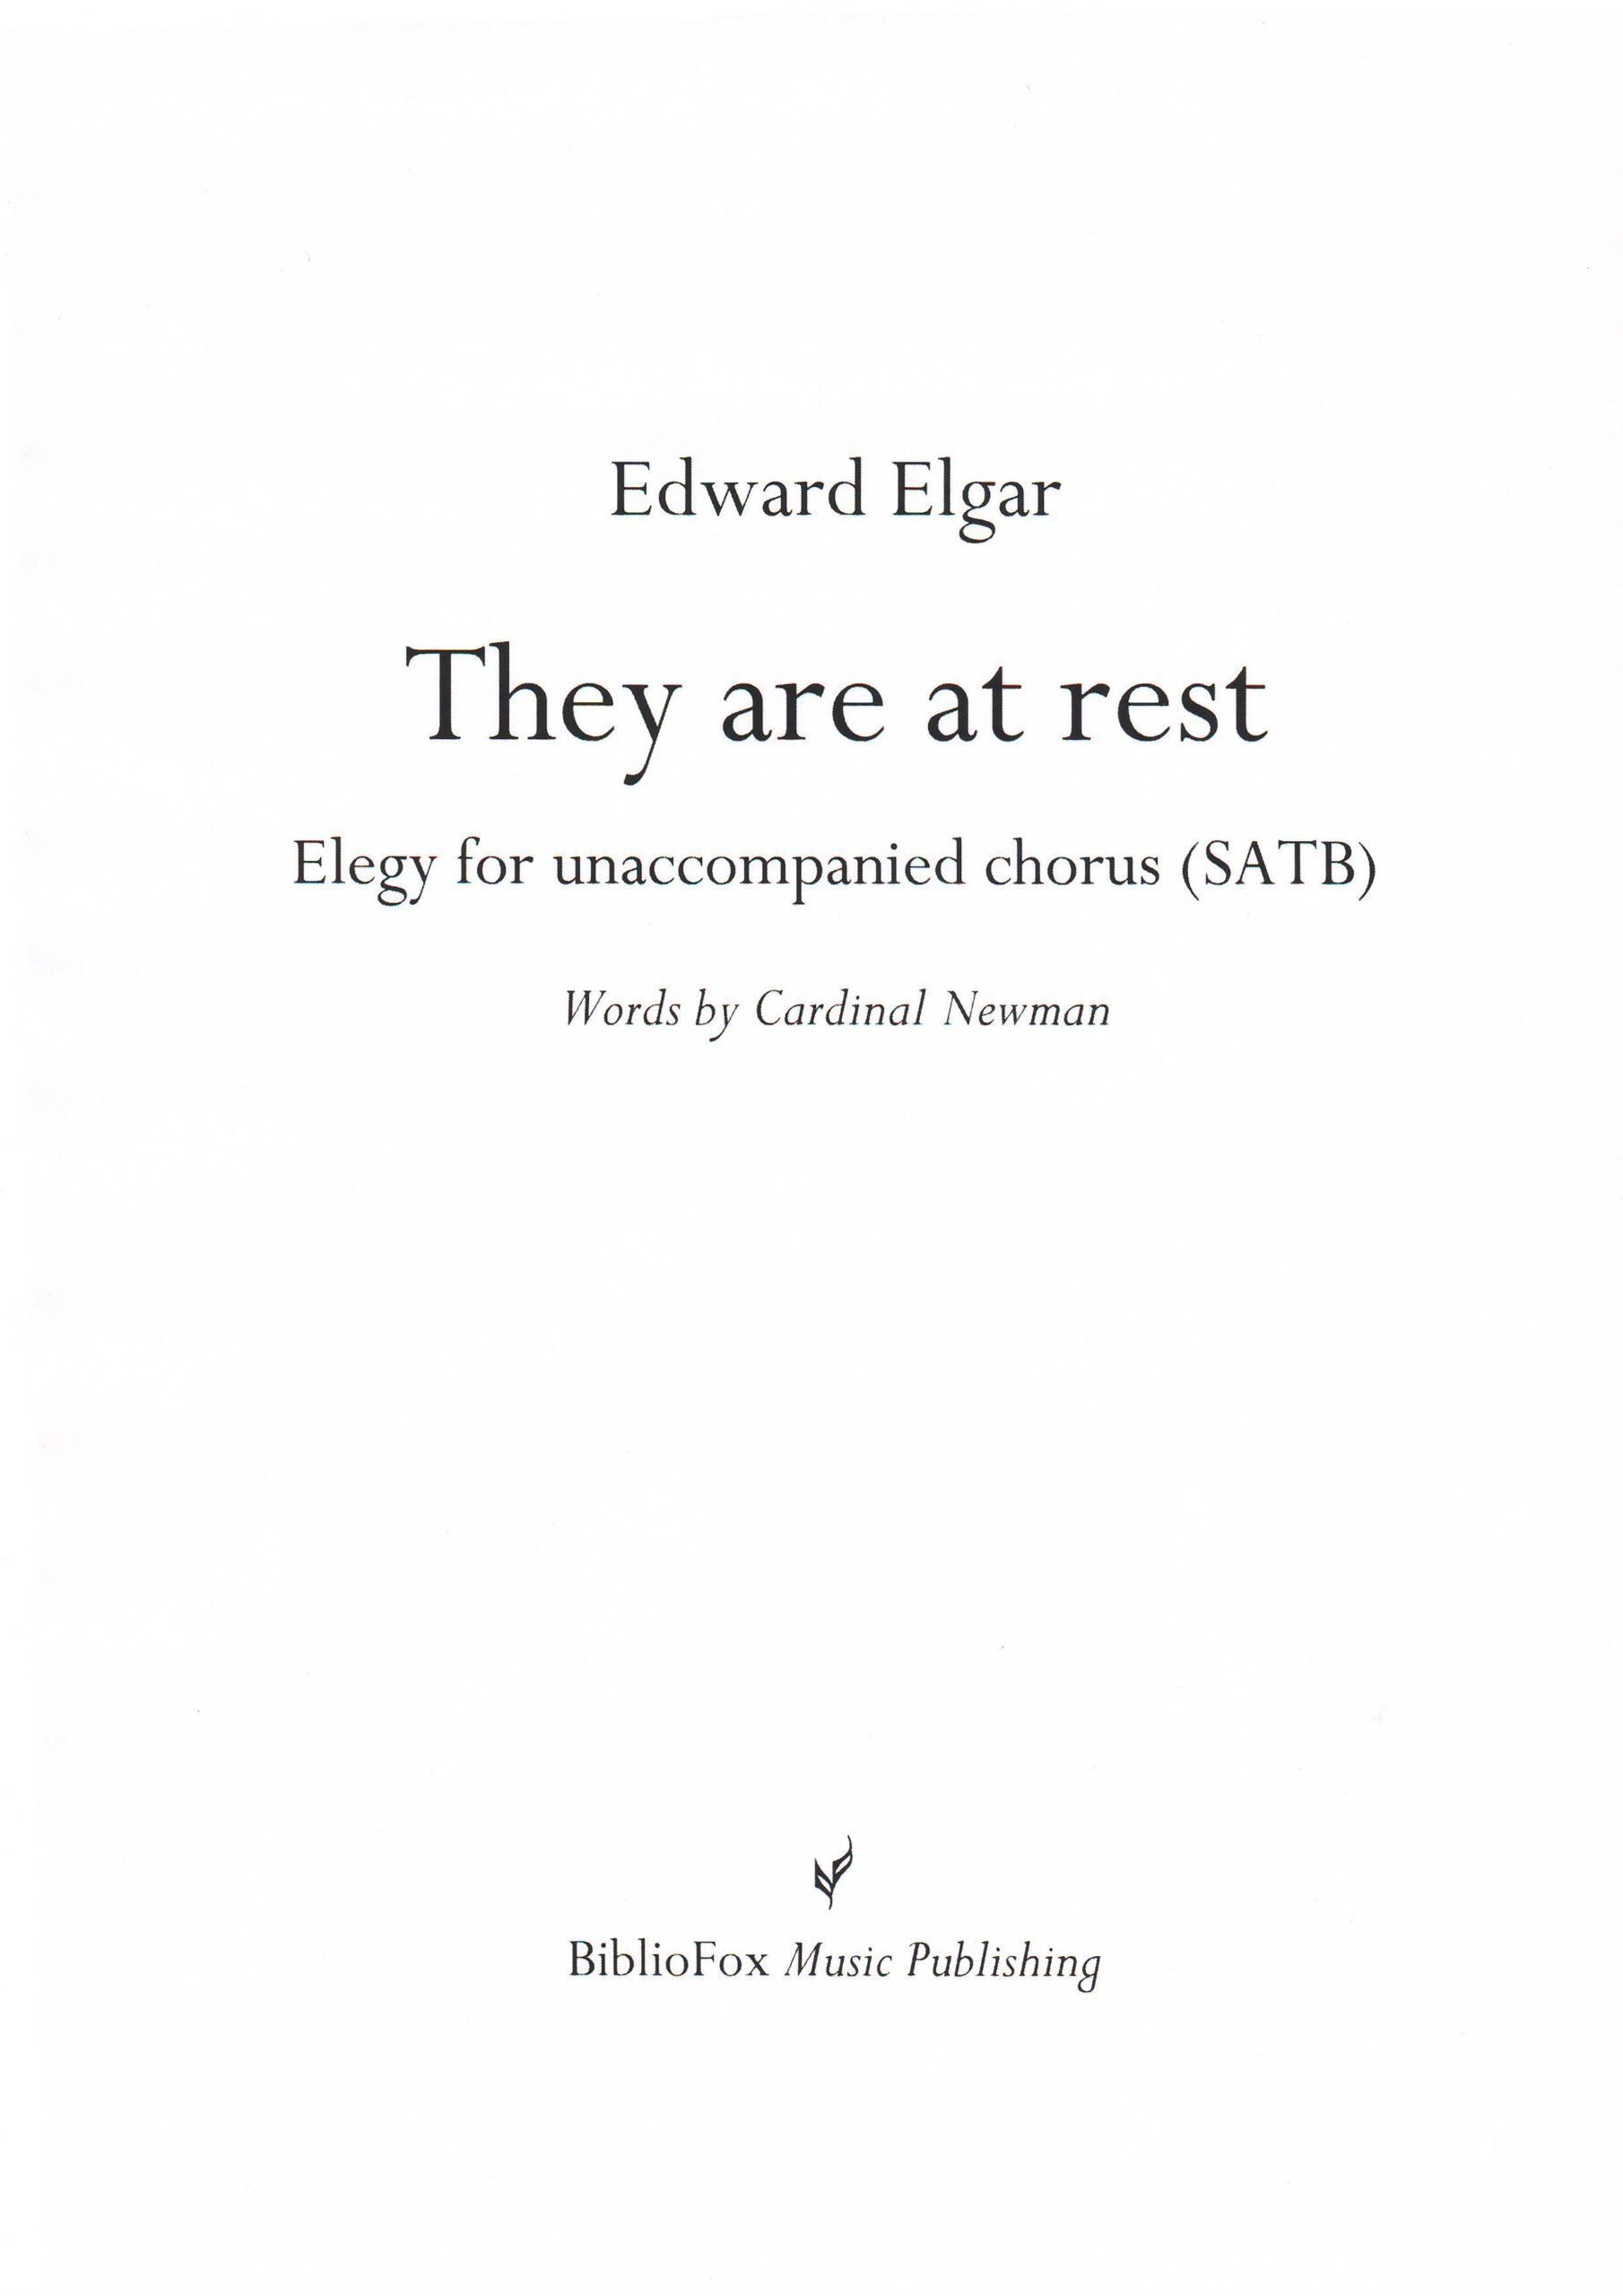 Cover page of Elgar They are at rest